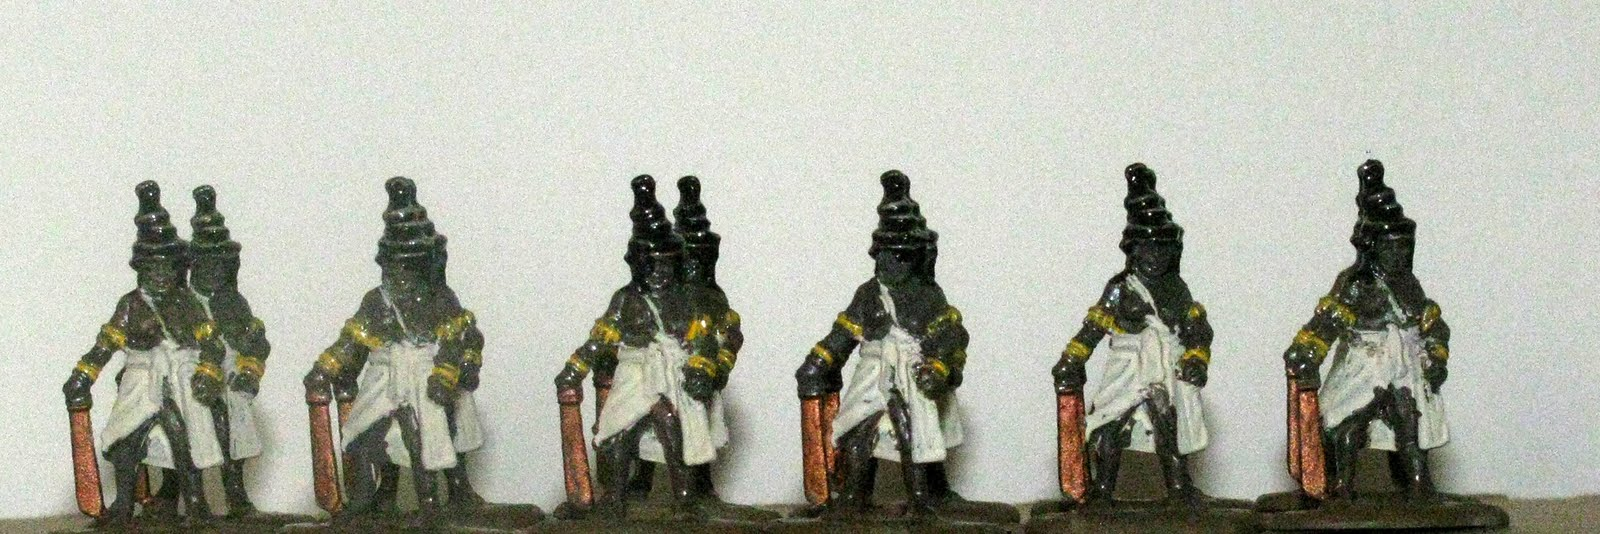 Maiden Guard command - 1st Corps